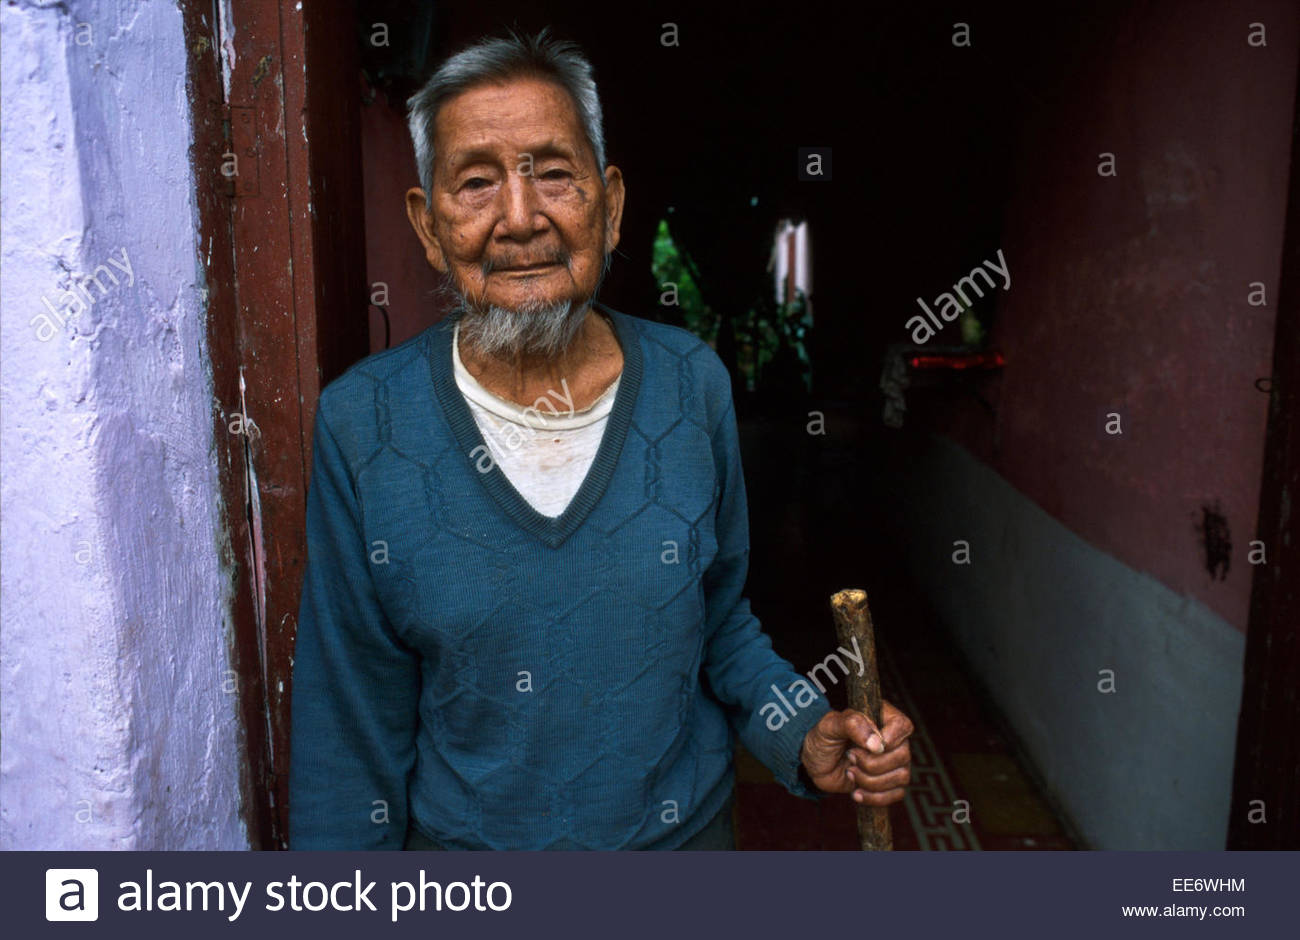 Mexcaltitan, A Chinese immigrant - Stock Image